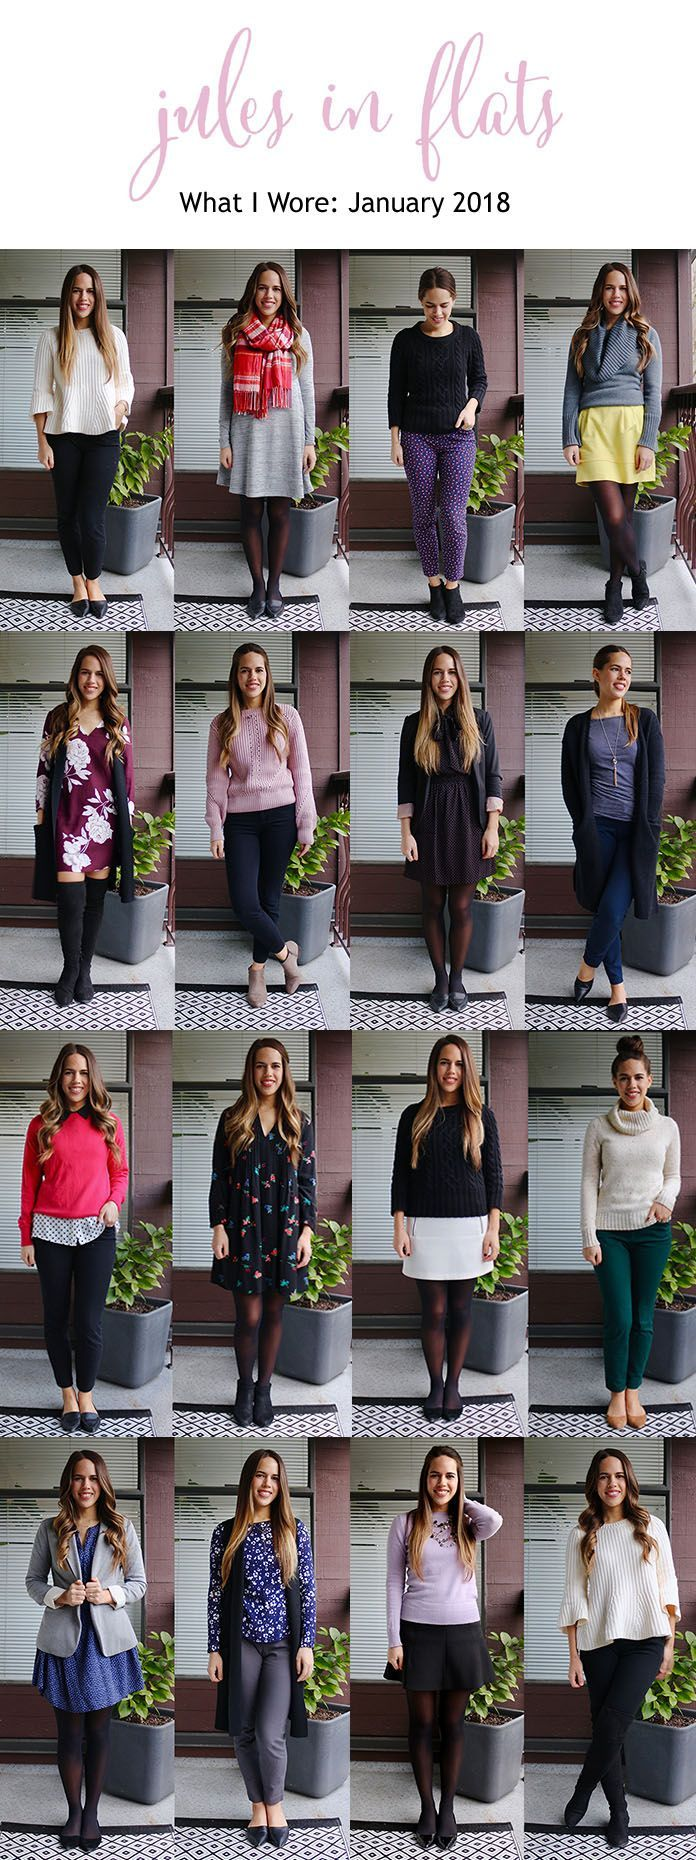 Jules in Flats - What I Wore in January